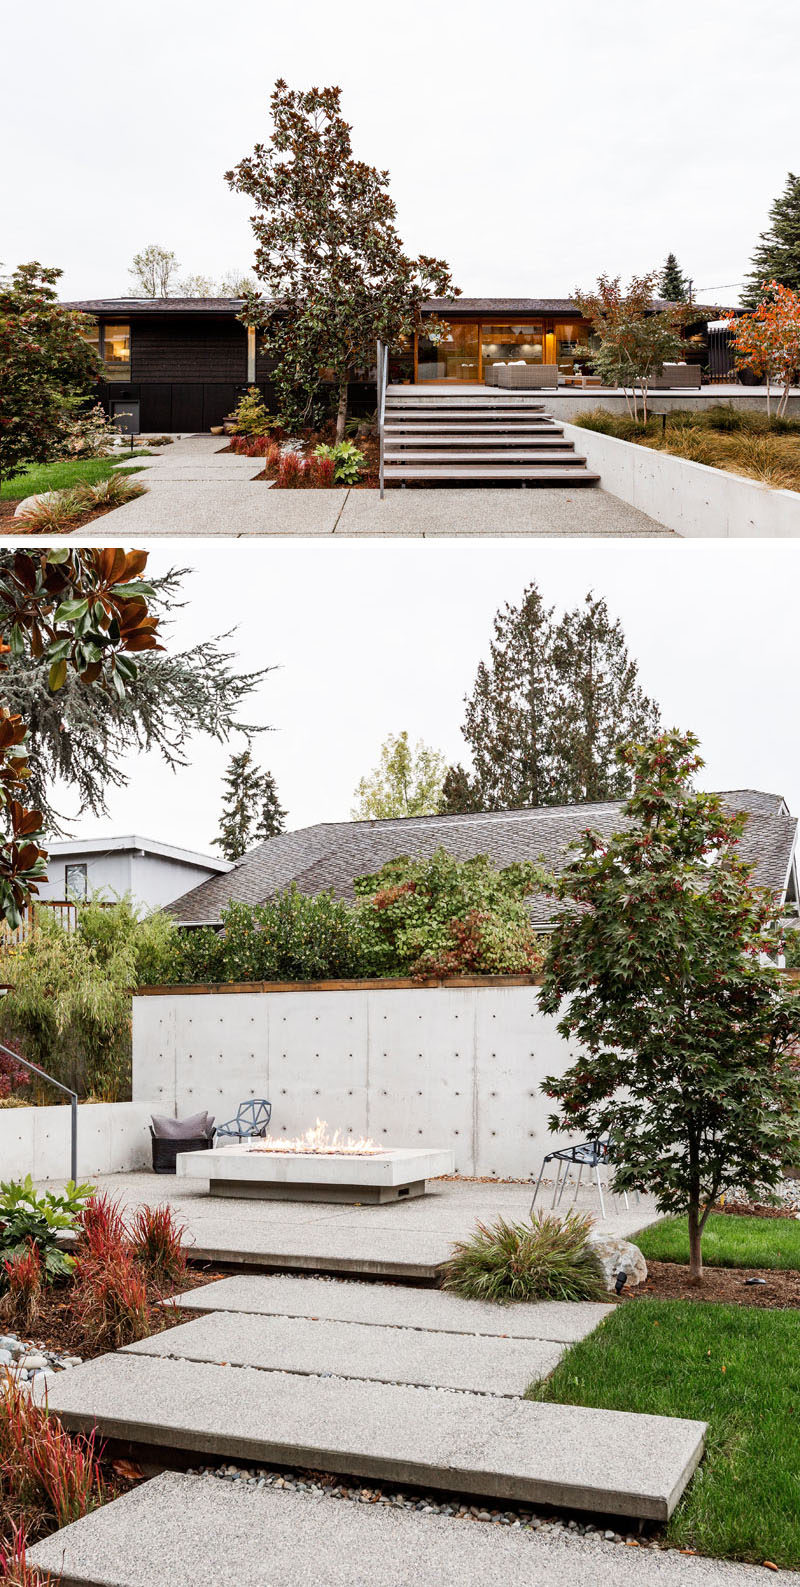 This completely updated rear garden has been landscaped, with stairs leading down from the outdoor lounge area to a path that connects to a secondary seating area with an outdoor fireplace. #ModernBackyard #LandscapeDesign